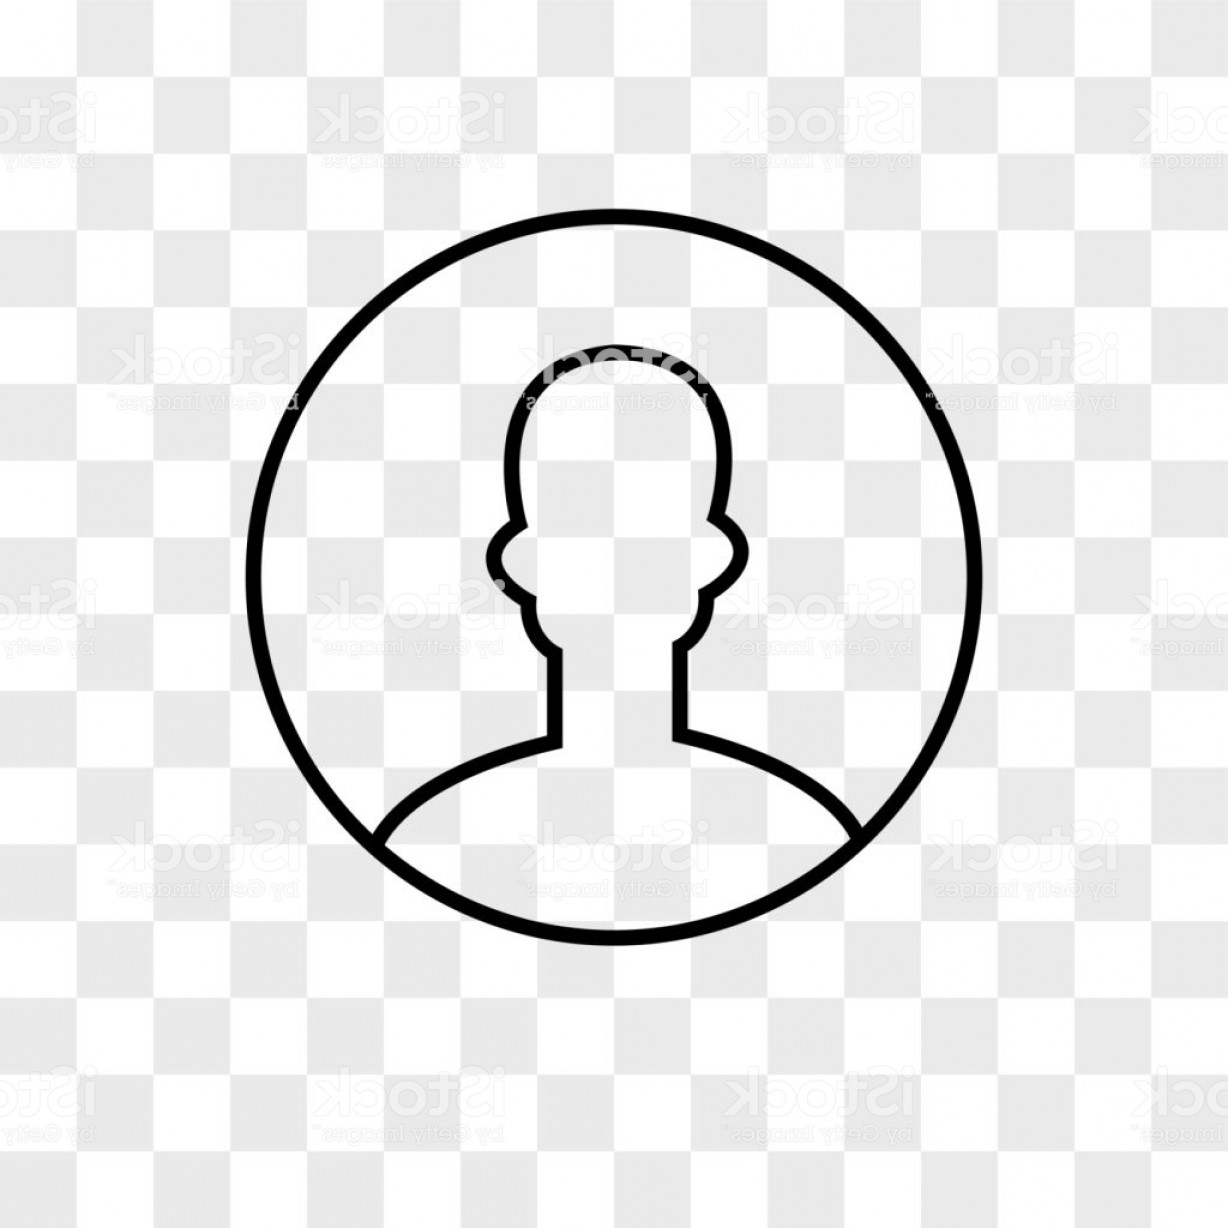 User Icon Vector Free: User Vector Icon On Transparent Background User Icon Gm